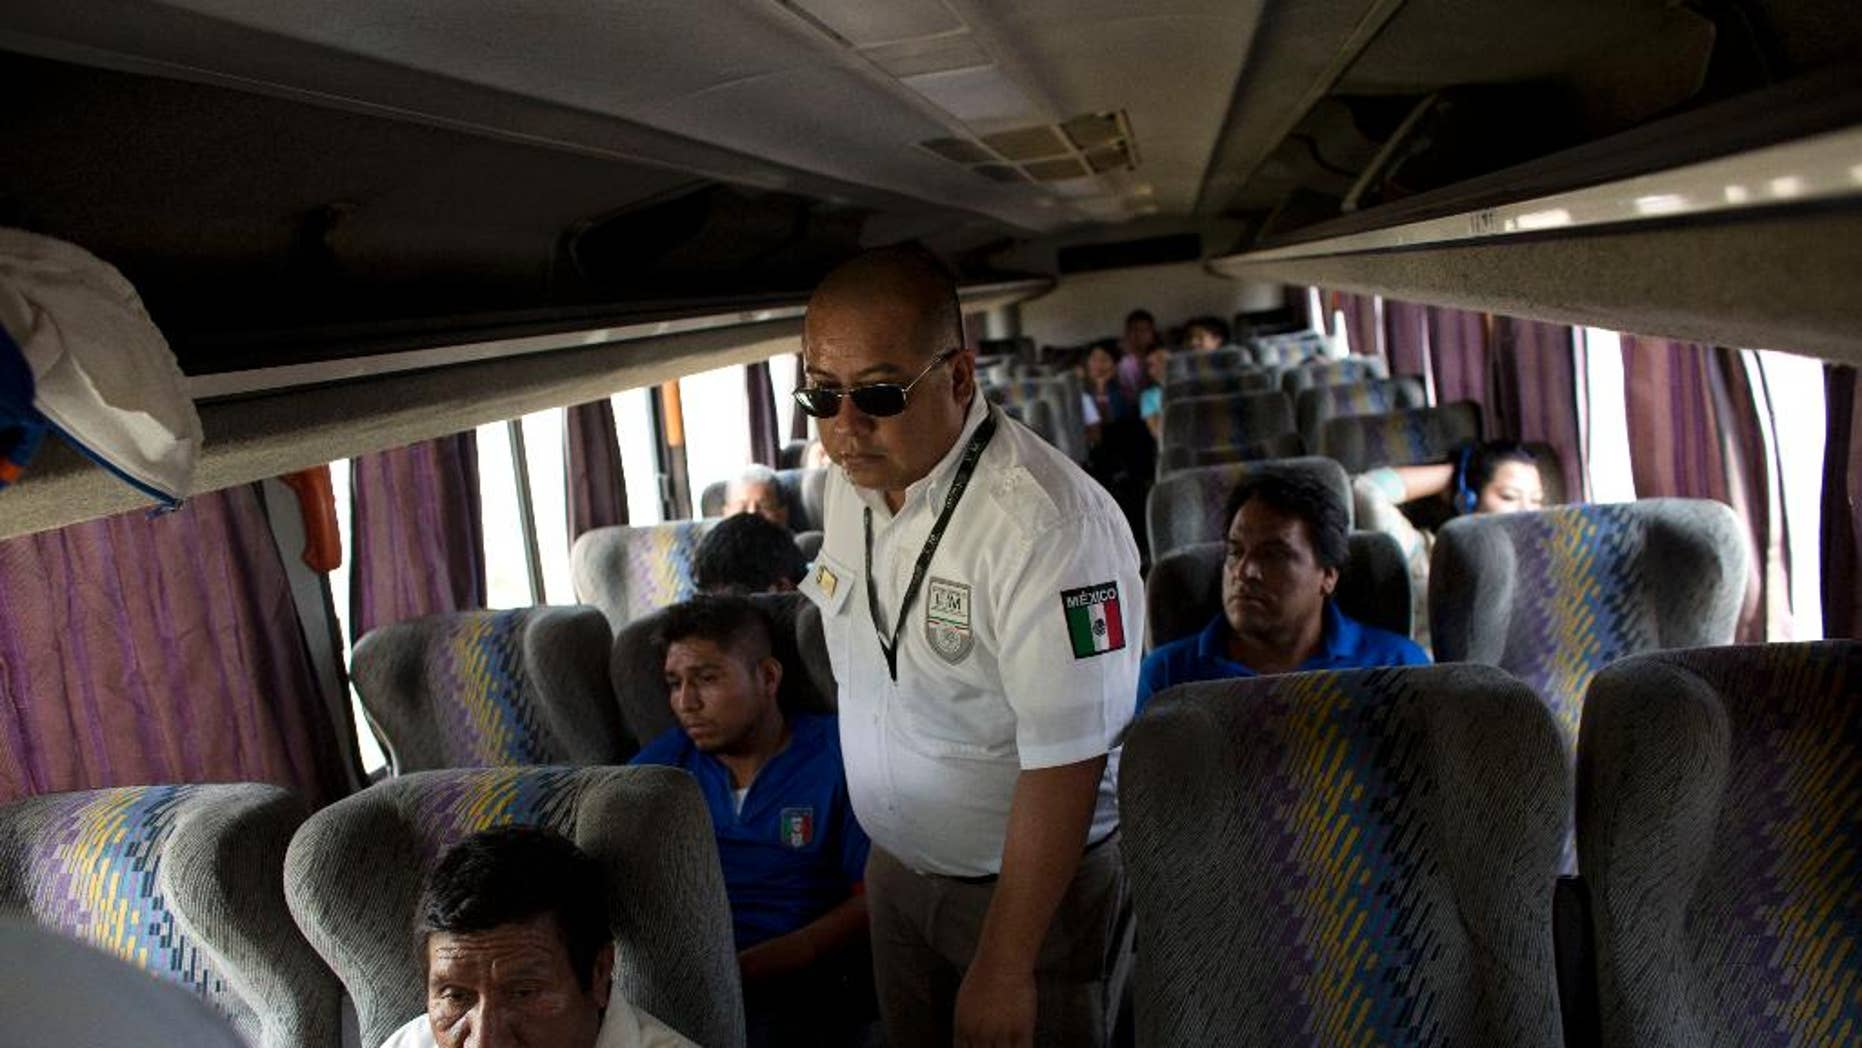 FILE - In this Aug. 27, 2014, file photo, an immigration official checks a bus for Central American migrants, at a roadblock north of Arriaga, Chiapas state, Mexico. According to data from Mexico's National Immigration Institute, Mexico has deported 79 percent more Central Americans in the first four months of 2015 than it did during the same period a year earlier. (AP Photo/Rebecca Blackwell, File)